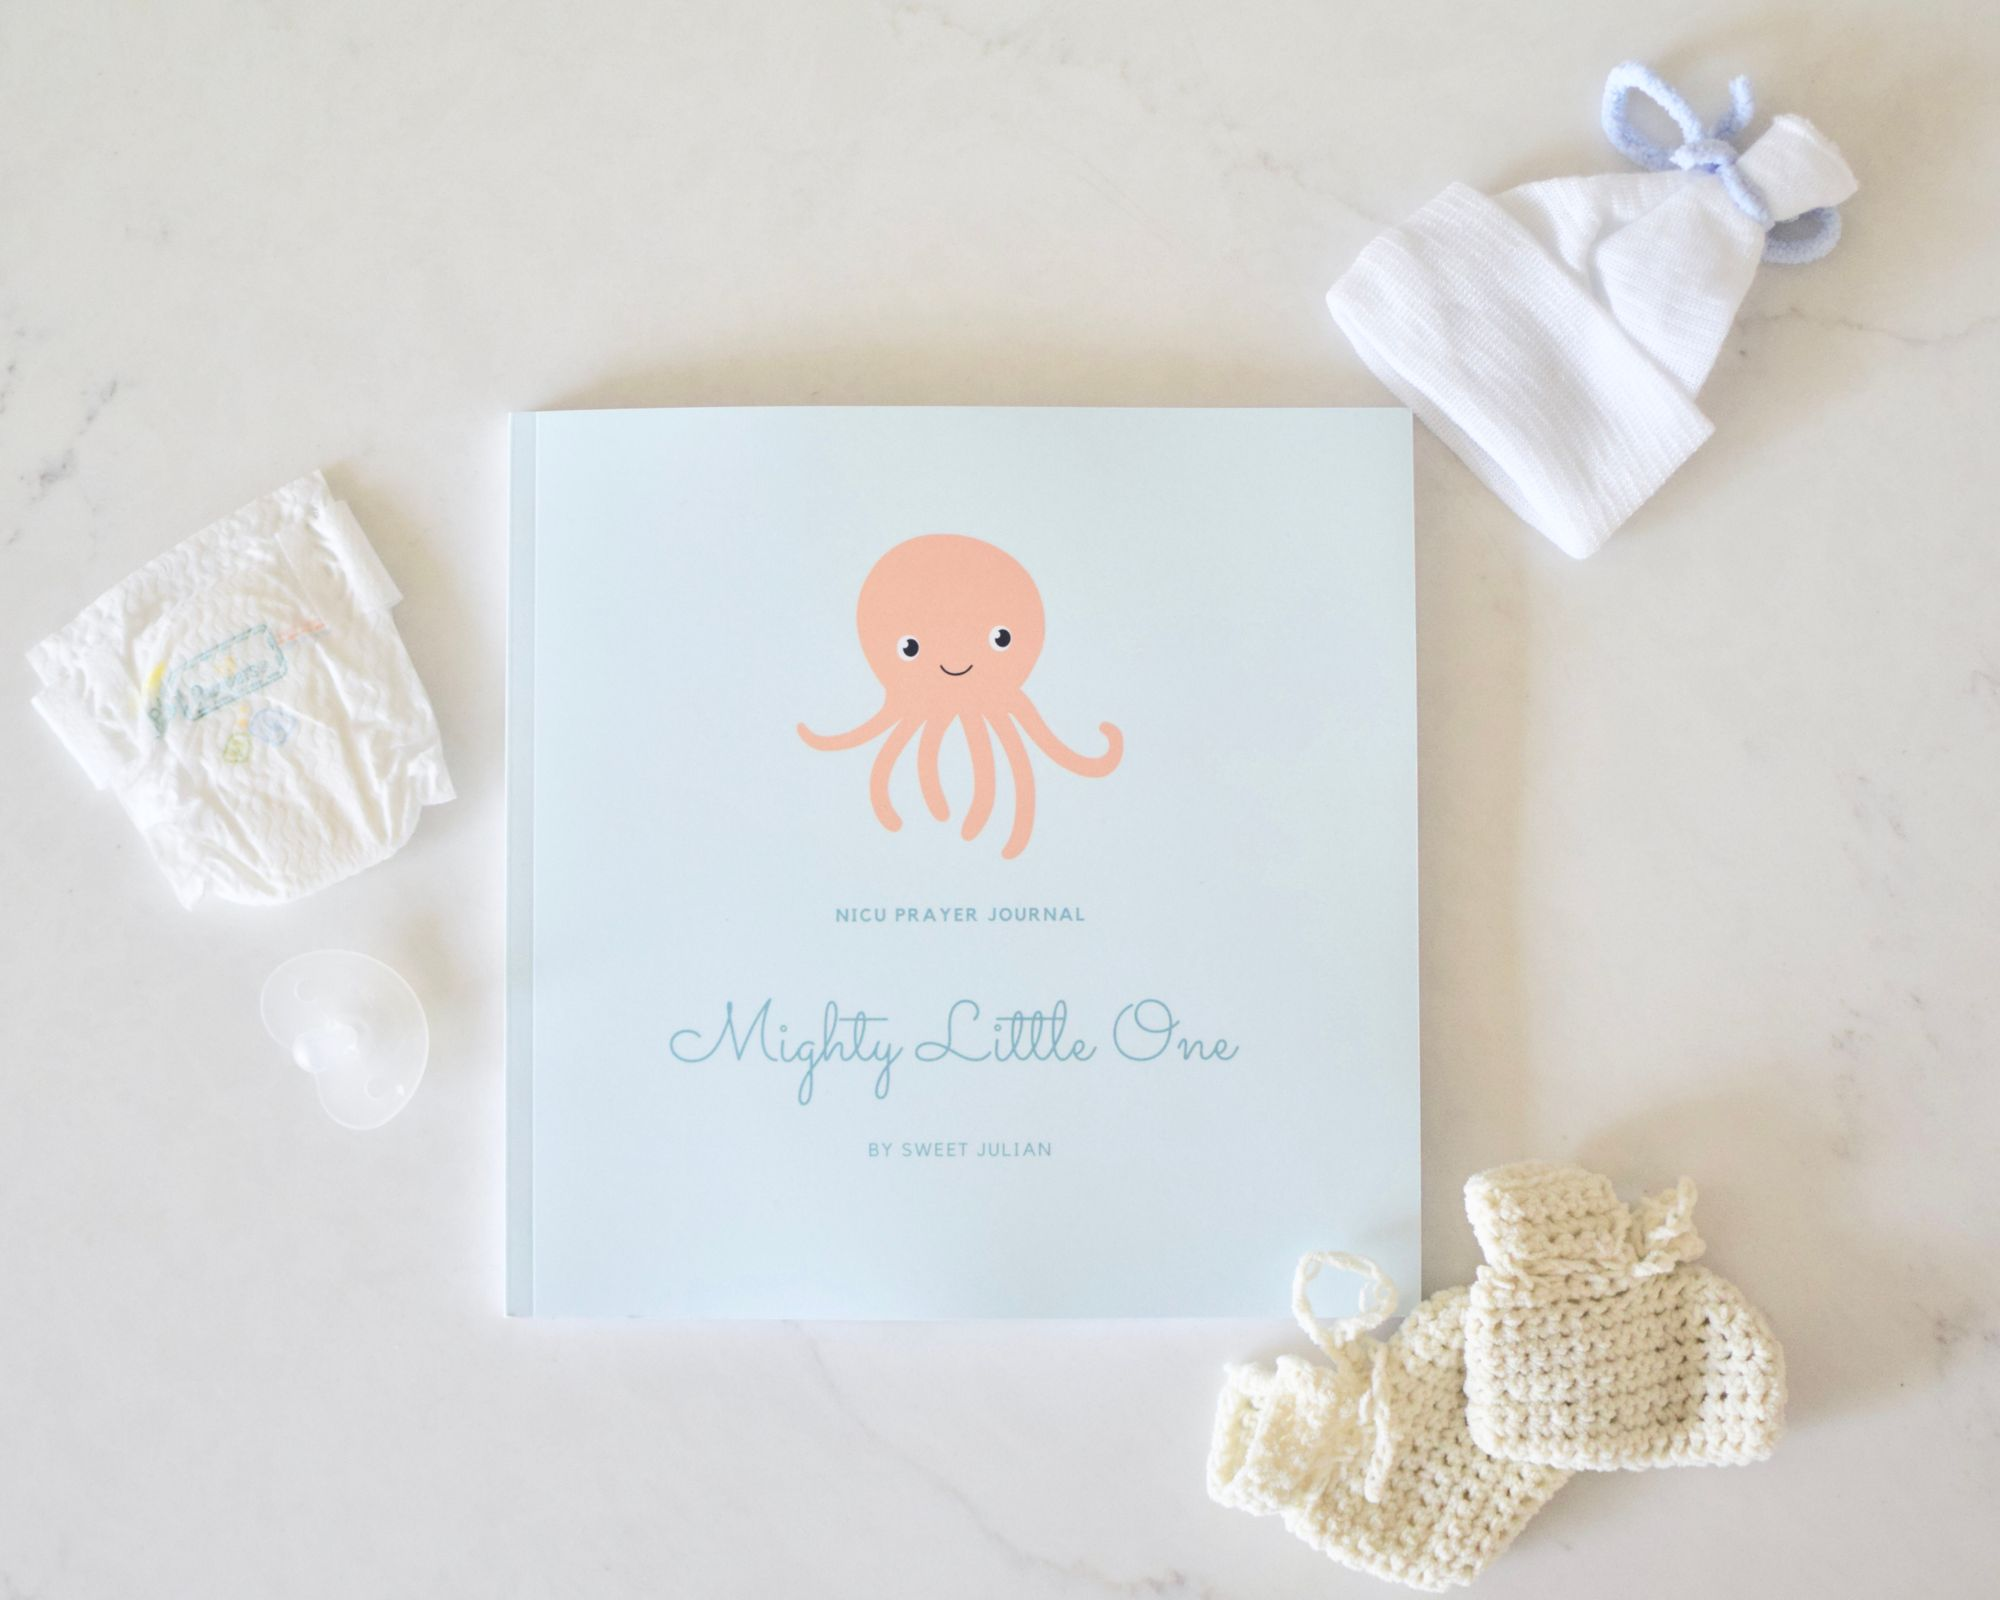 Mighty Little One | NICU Prayer Journal